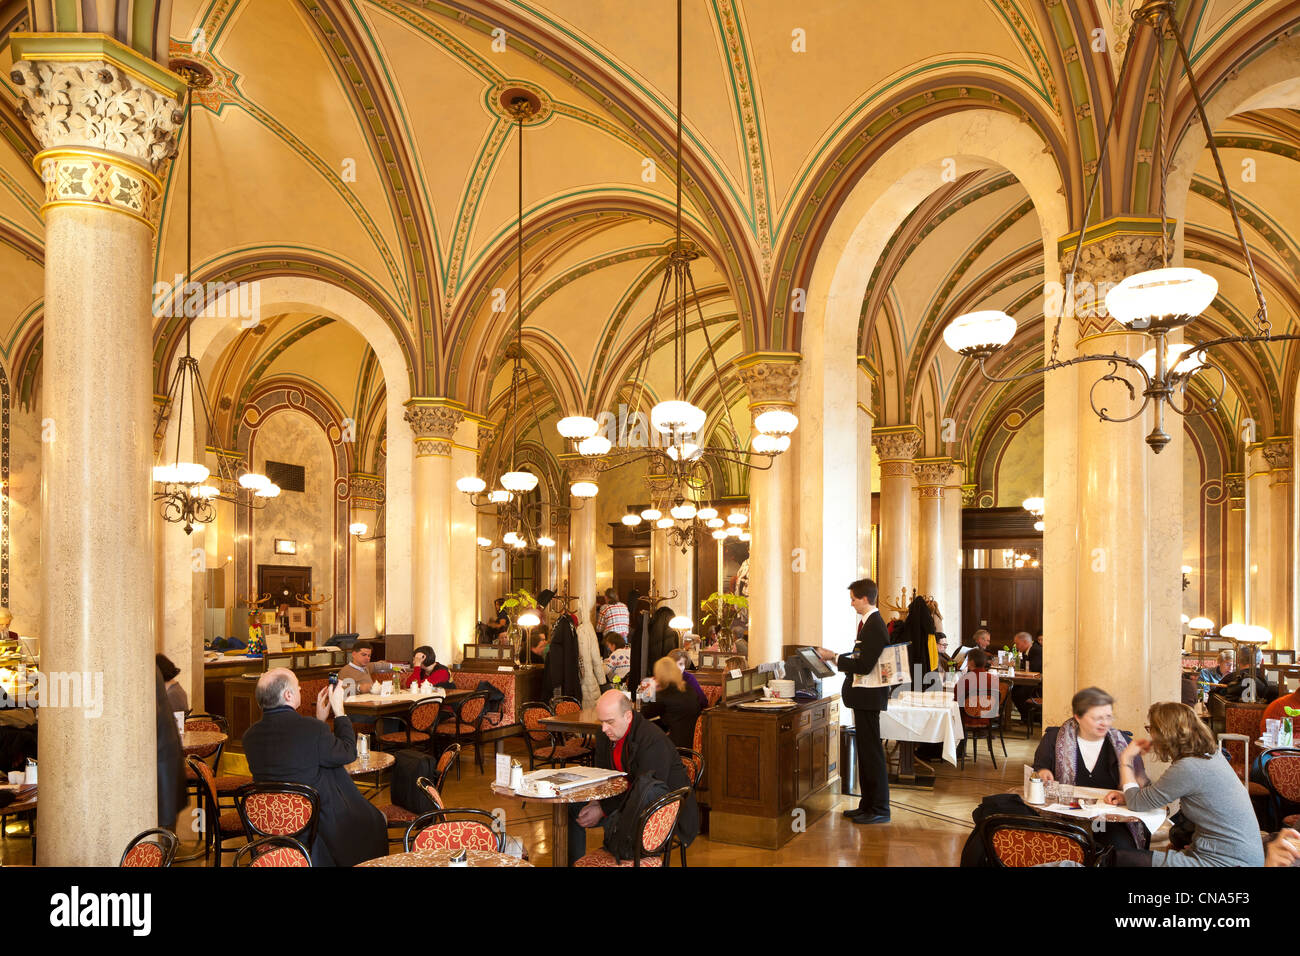 Austria, Vienna, historic center listed as World Heritage by UNESCO, Palais Ferstel, coffee Central opened in 1876 Stock Photo